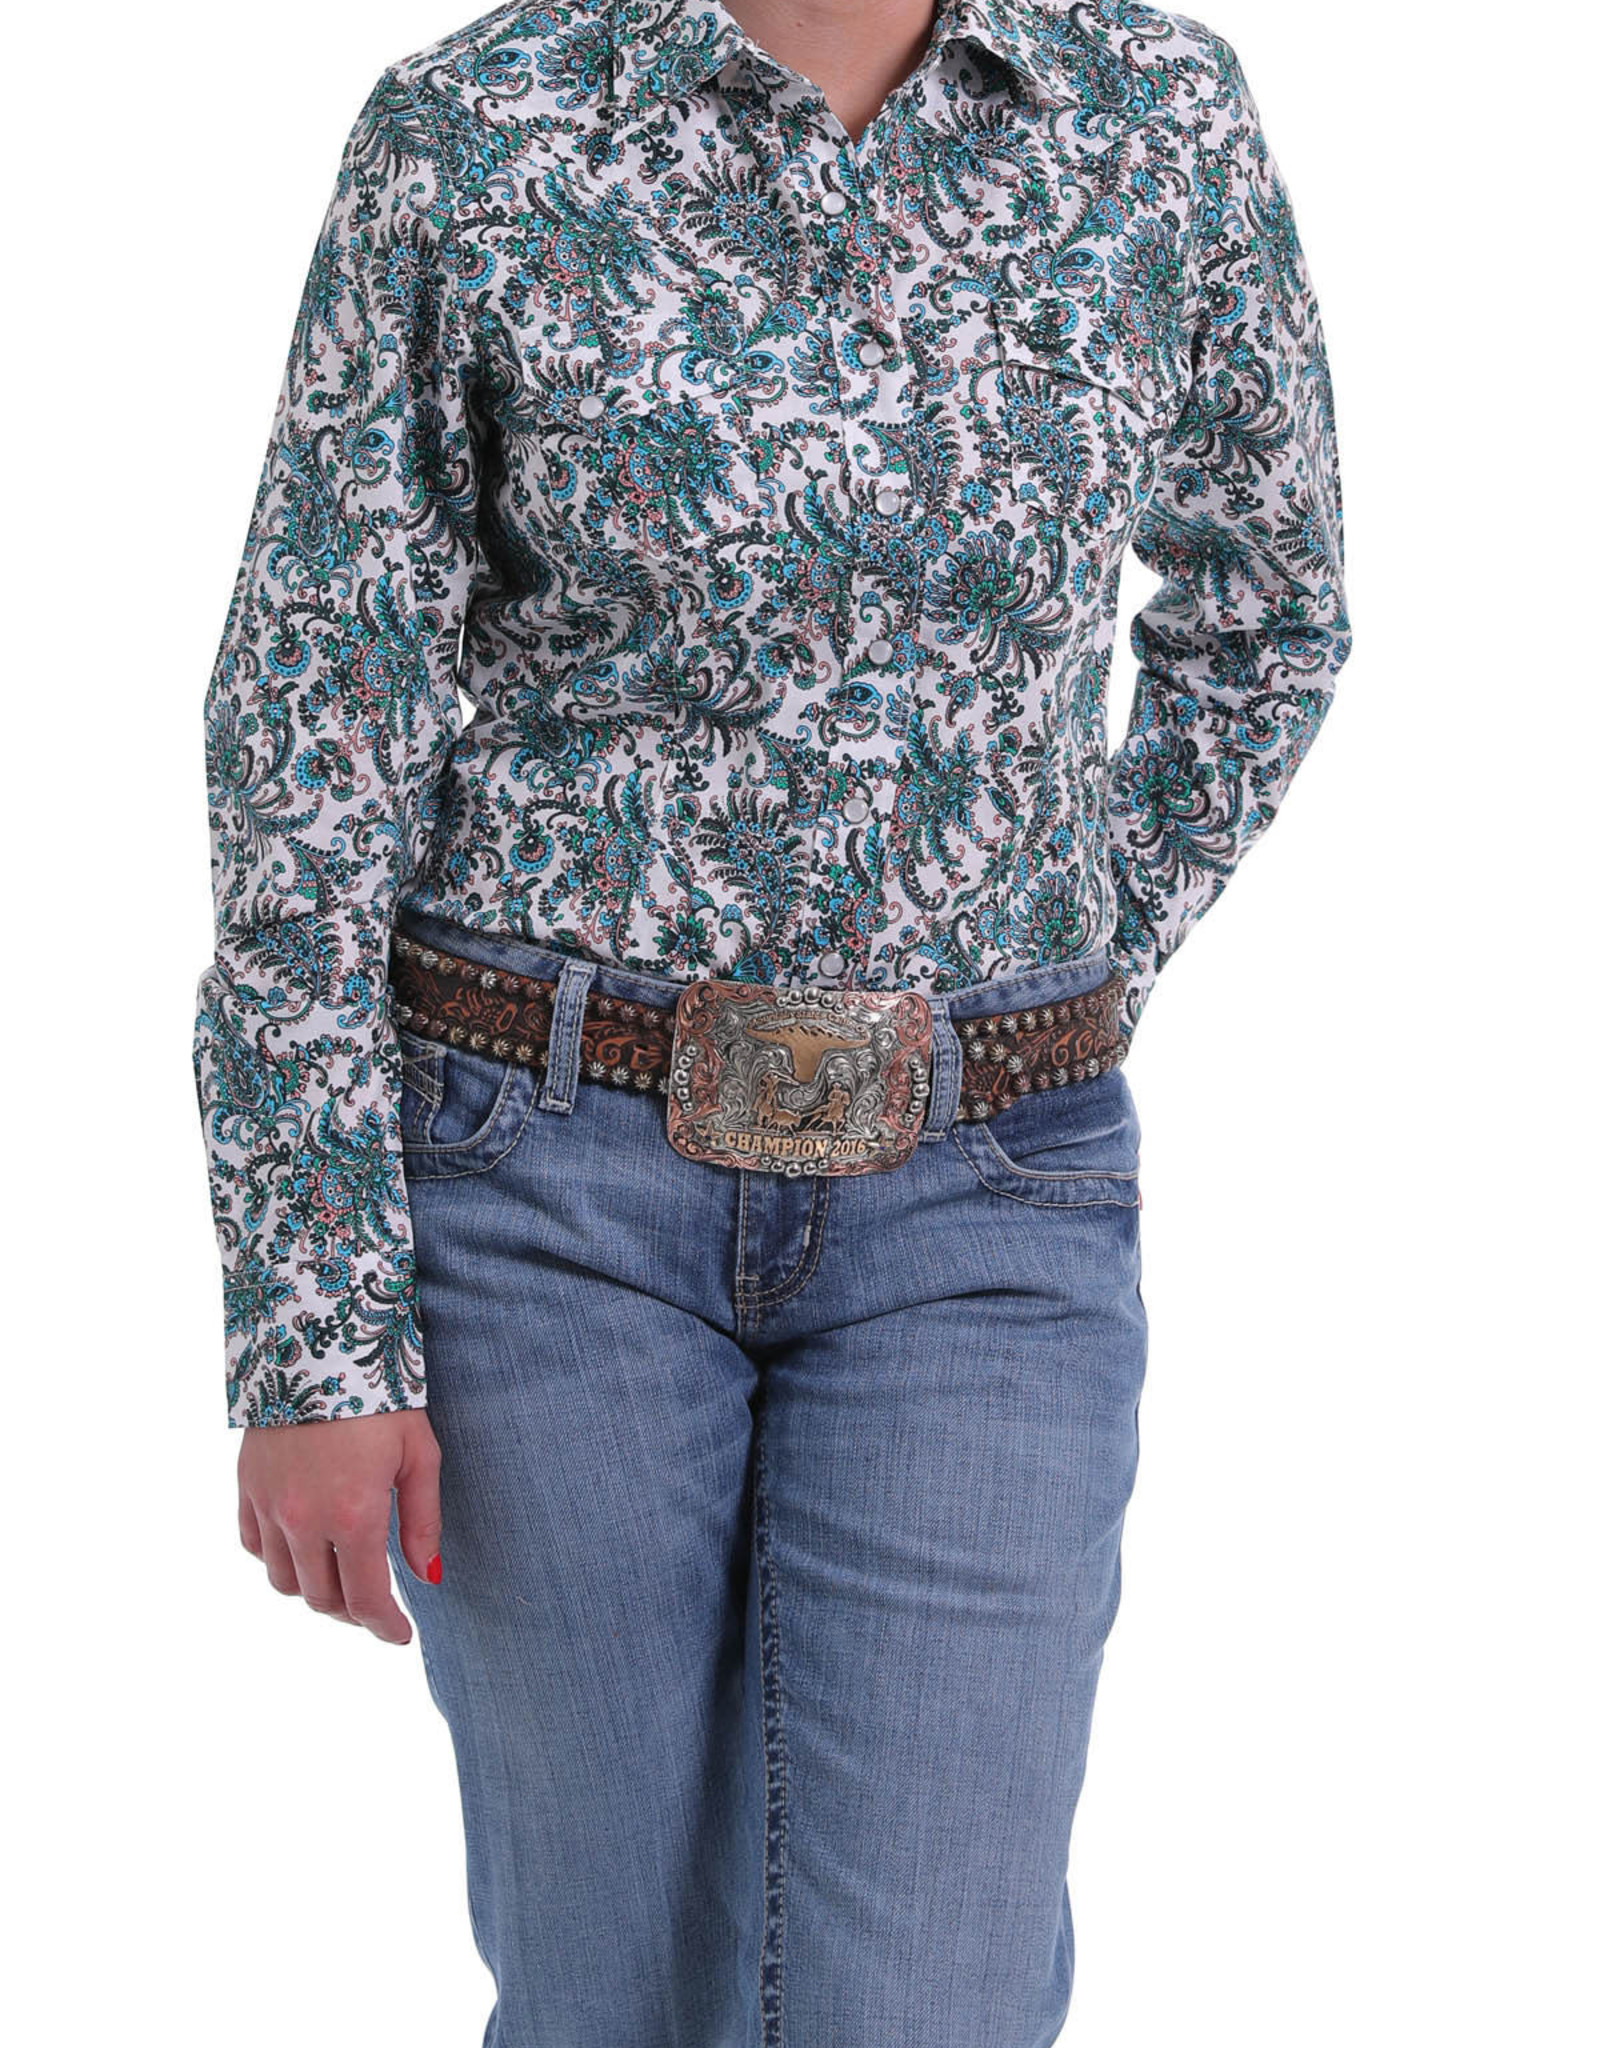 Cinch Womens Cinch Long Sleeve Blue Multi Color Paisley Shirt